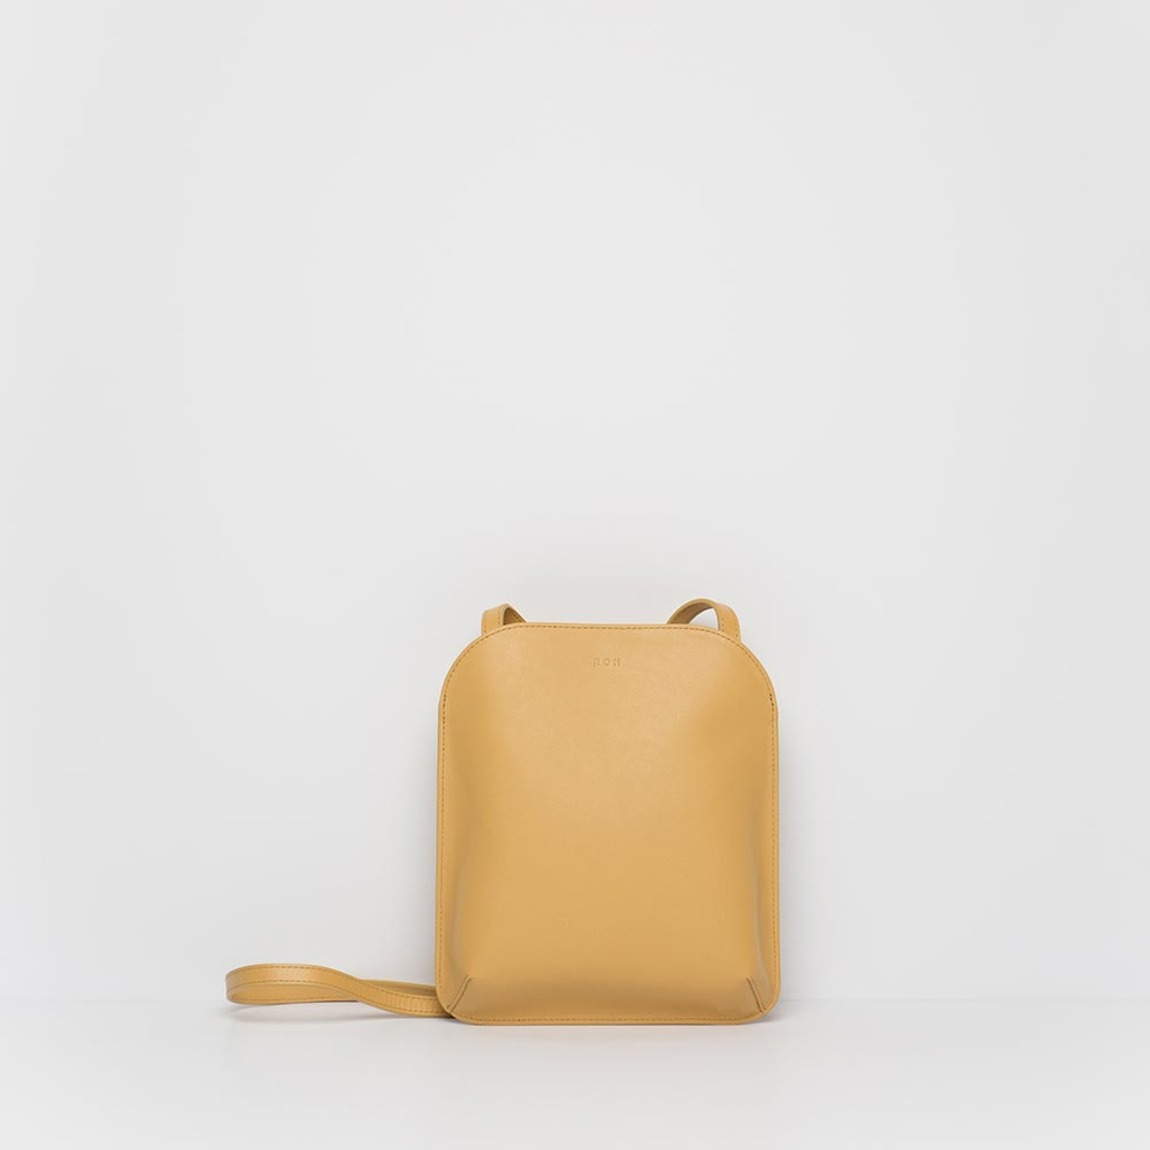 Clip Bag Yellow